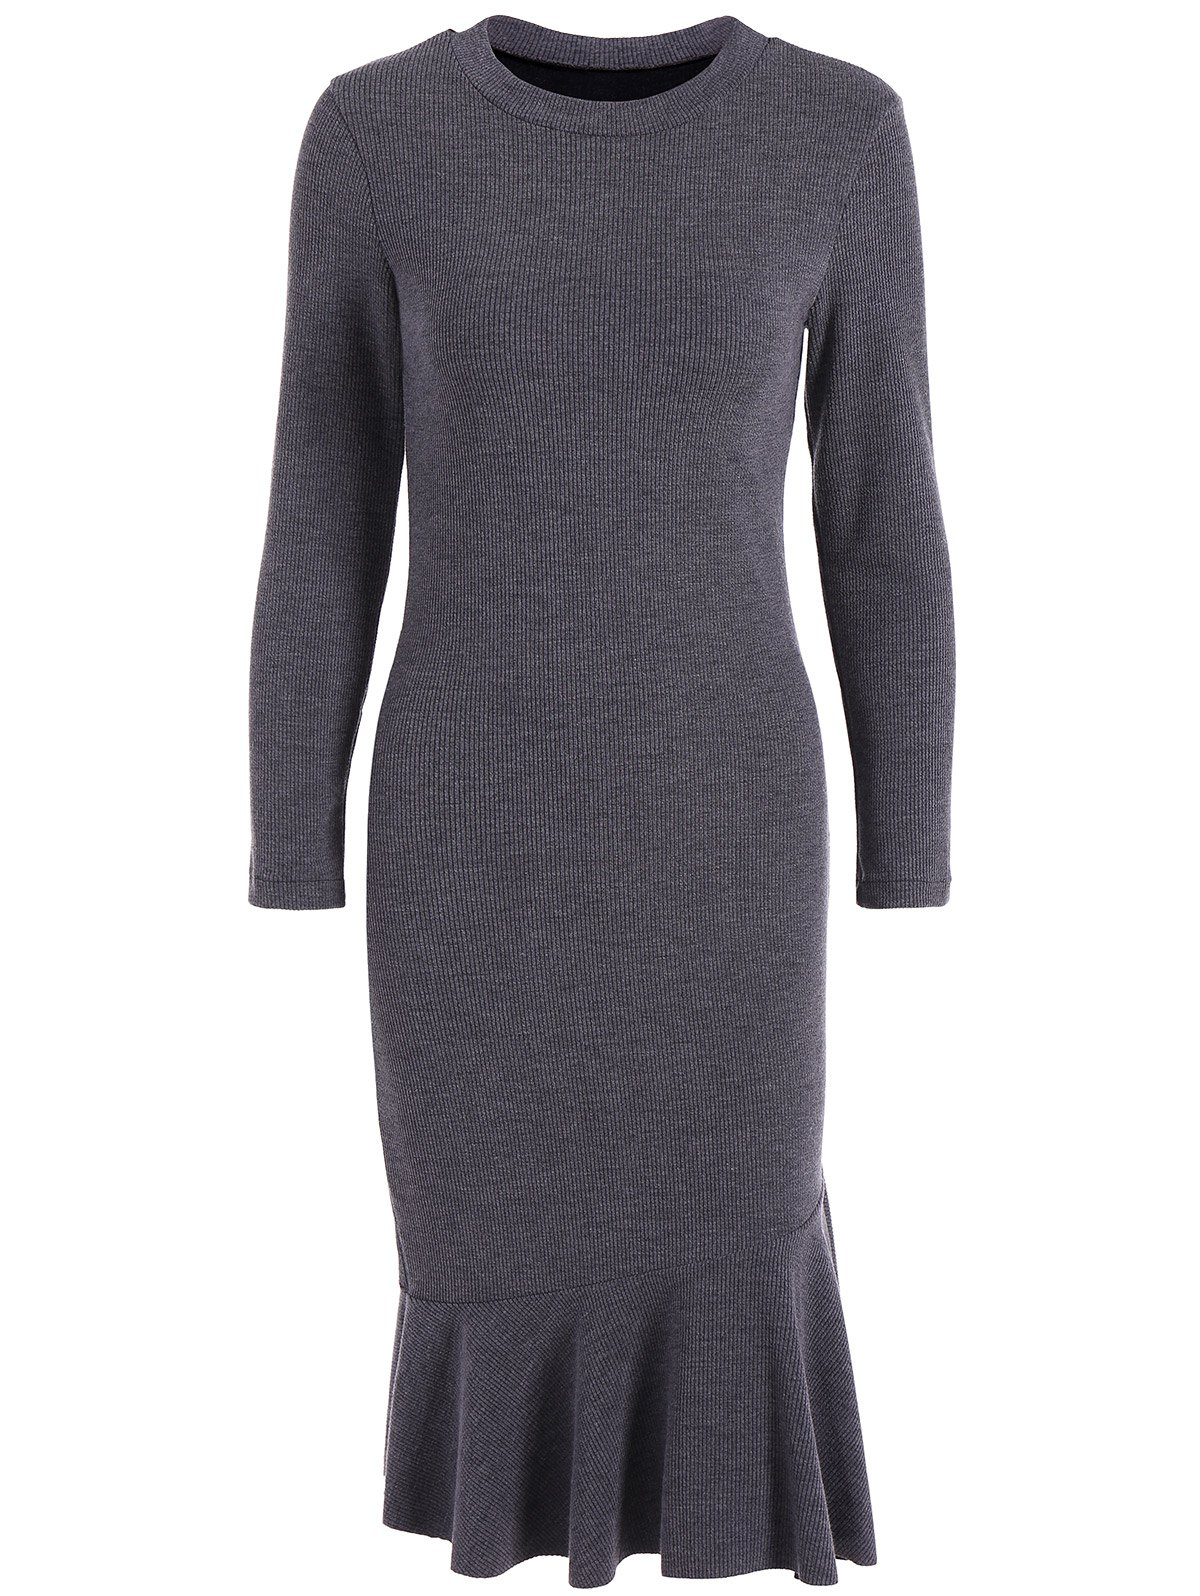 Long Sleeve Fitted Mermaid Midi Sweater Dress - DEEP GRAY 3XL